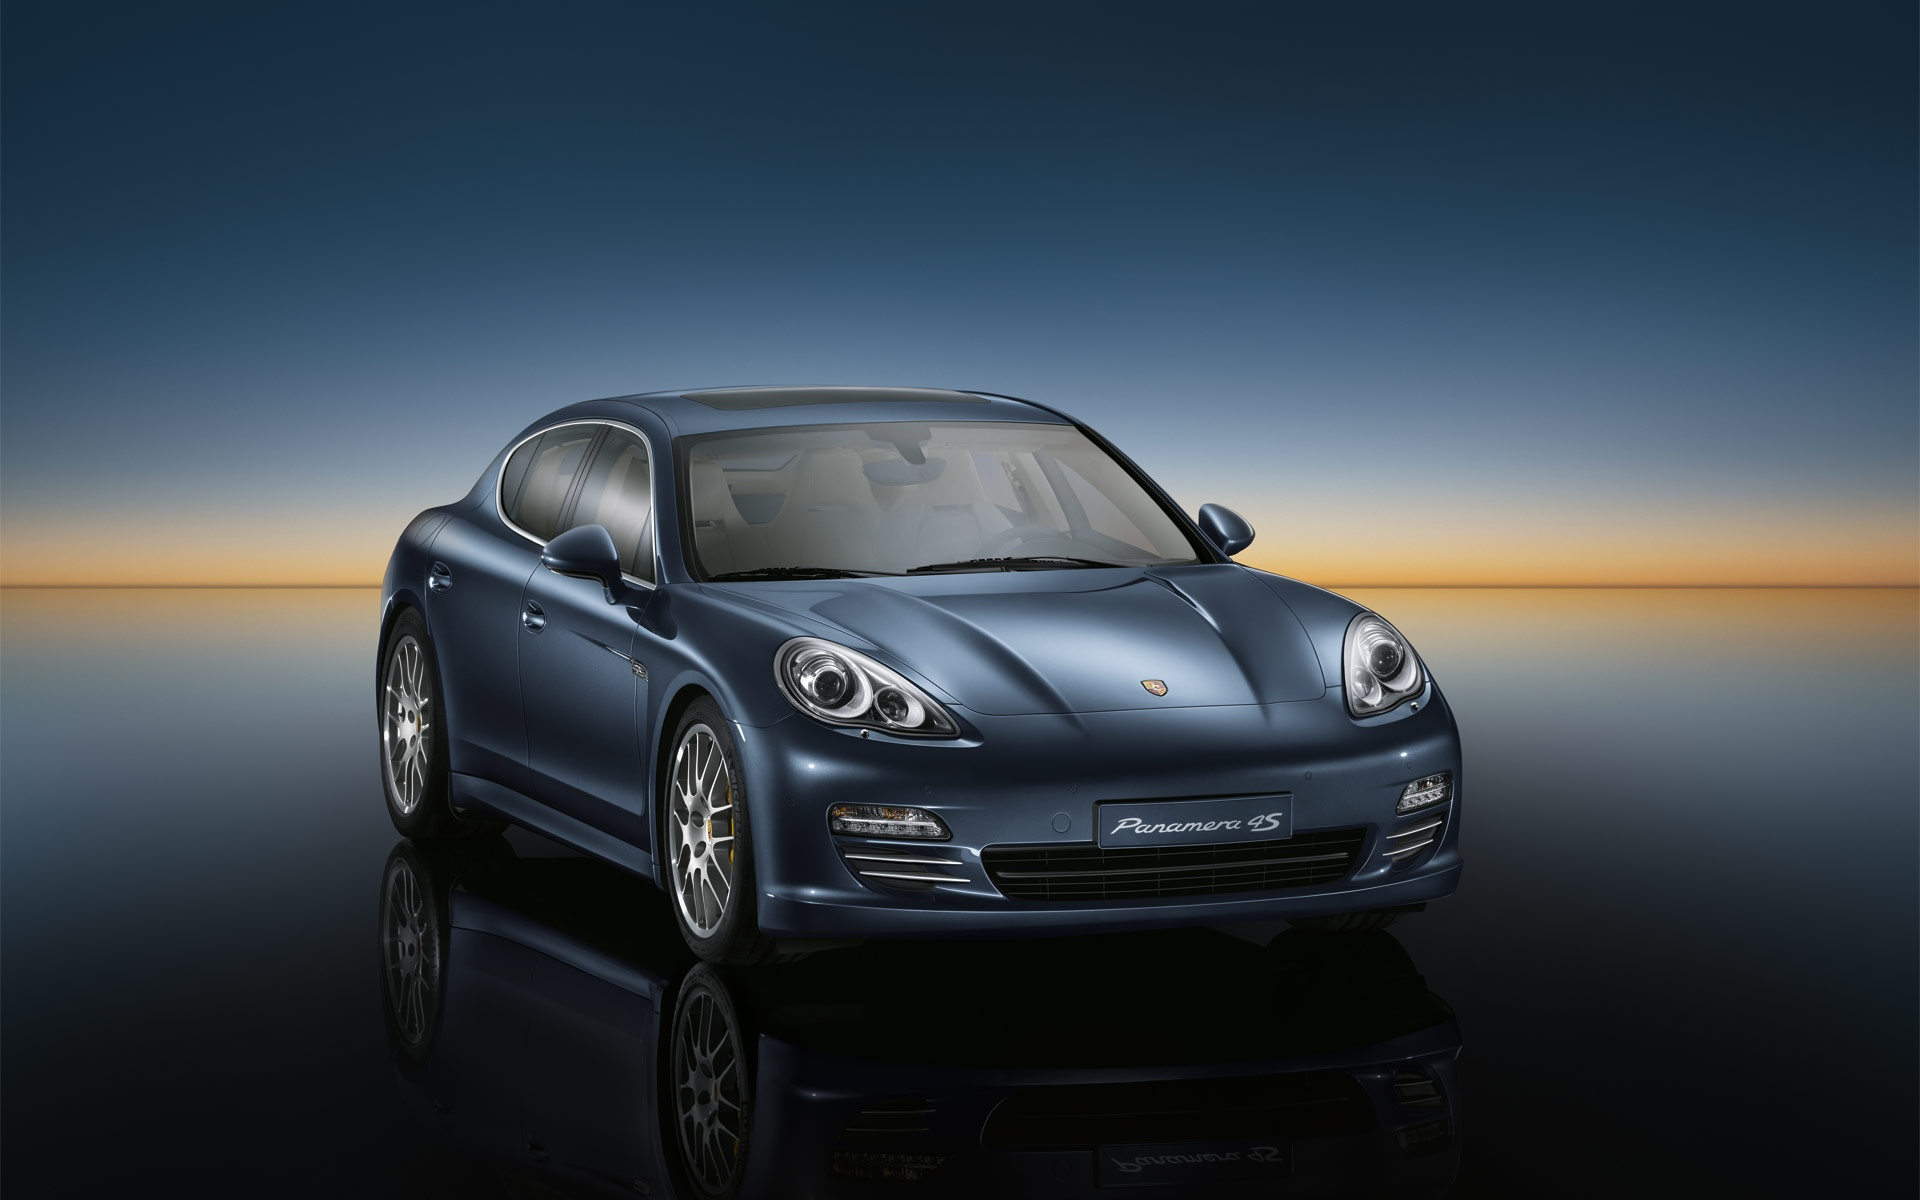 dusky porsche panamera 4s hdwallpaper. Black Bedroom Furniture Sets. Home Design Ideas